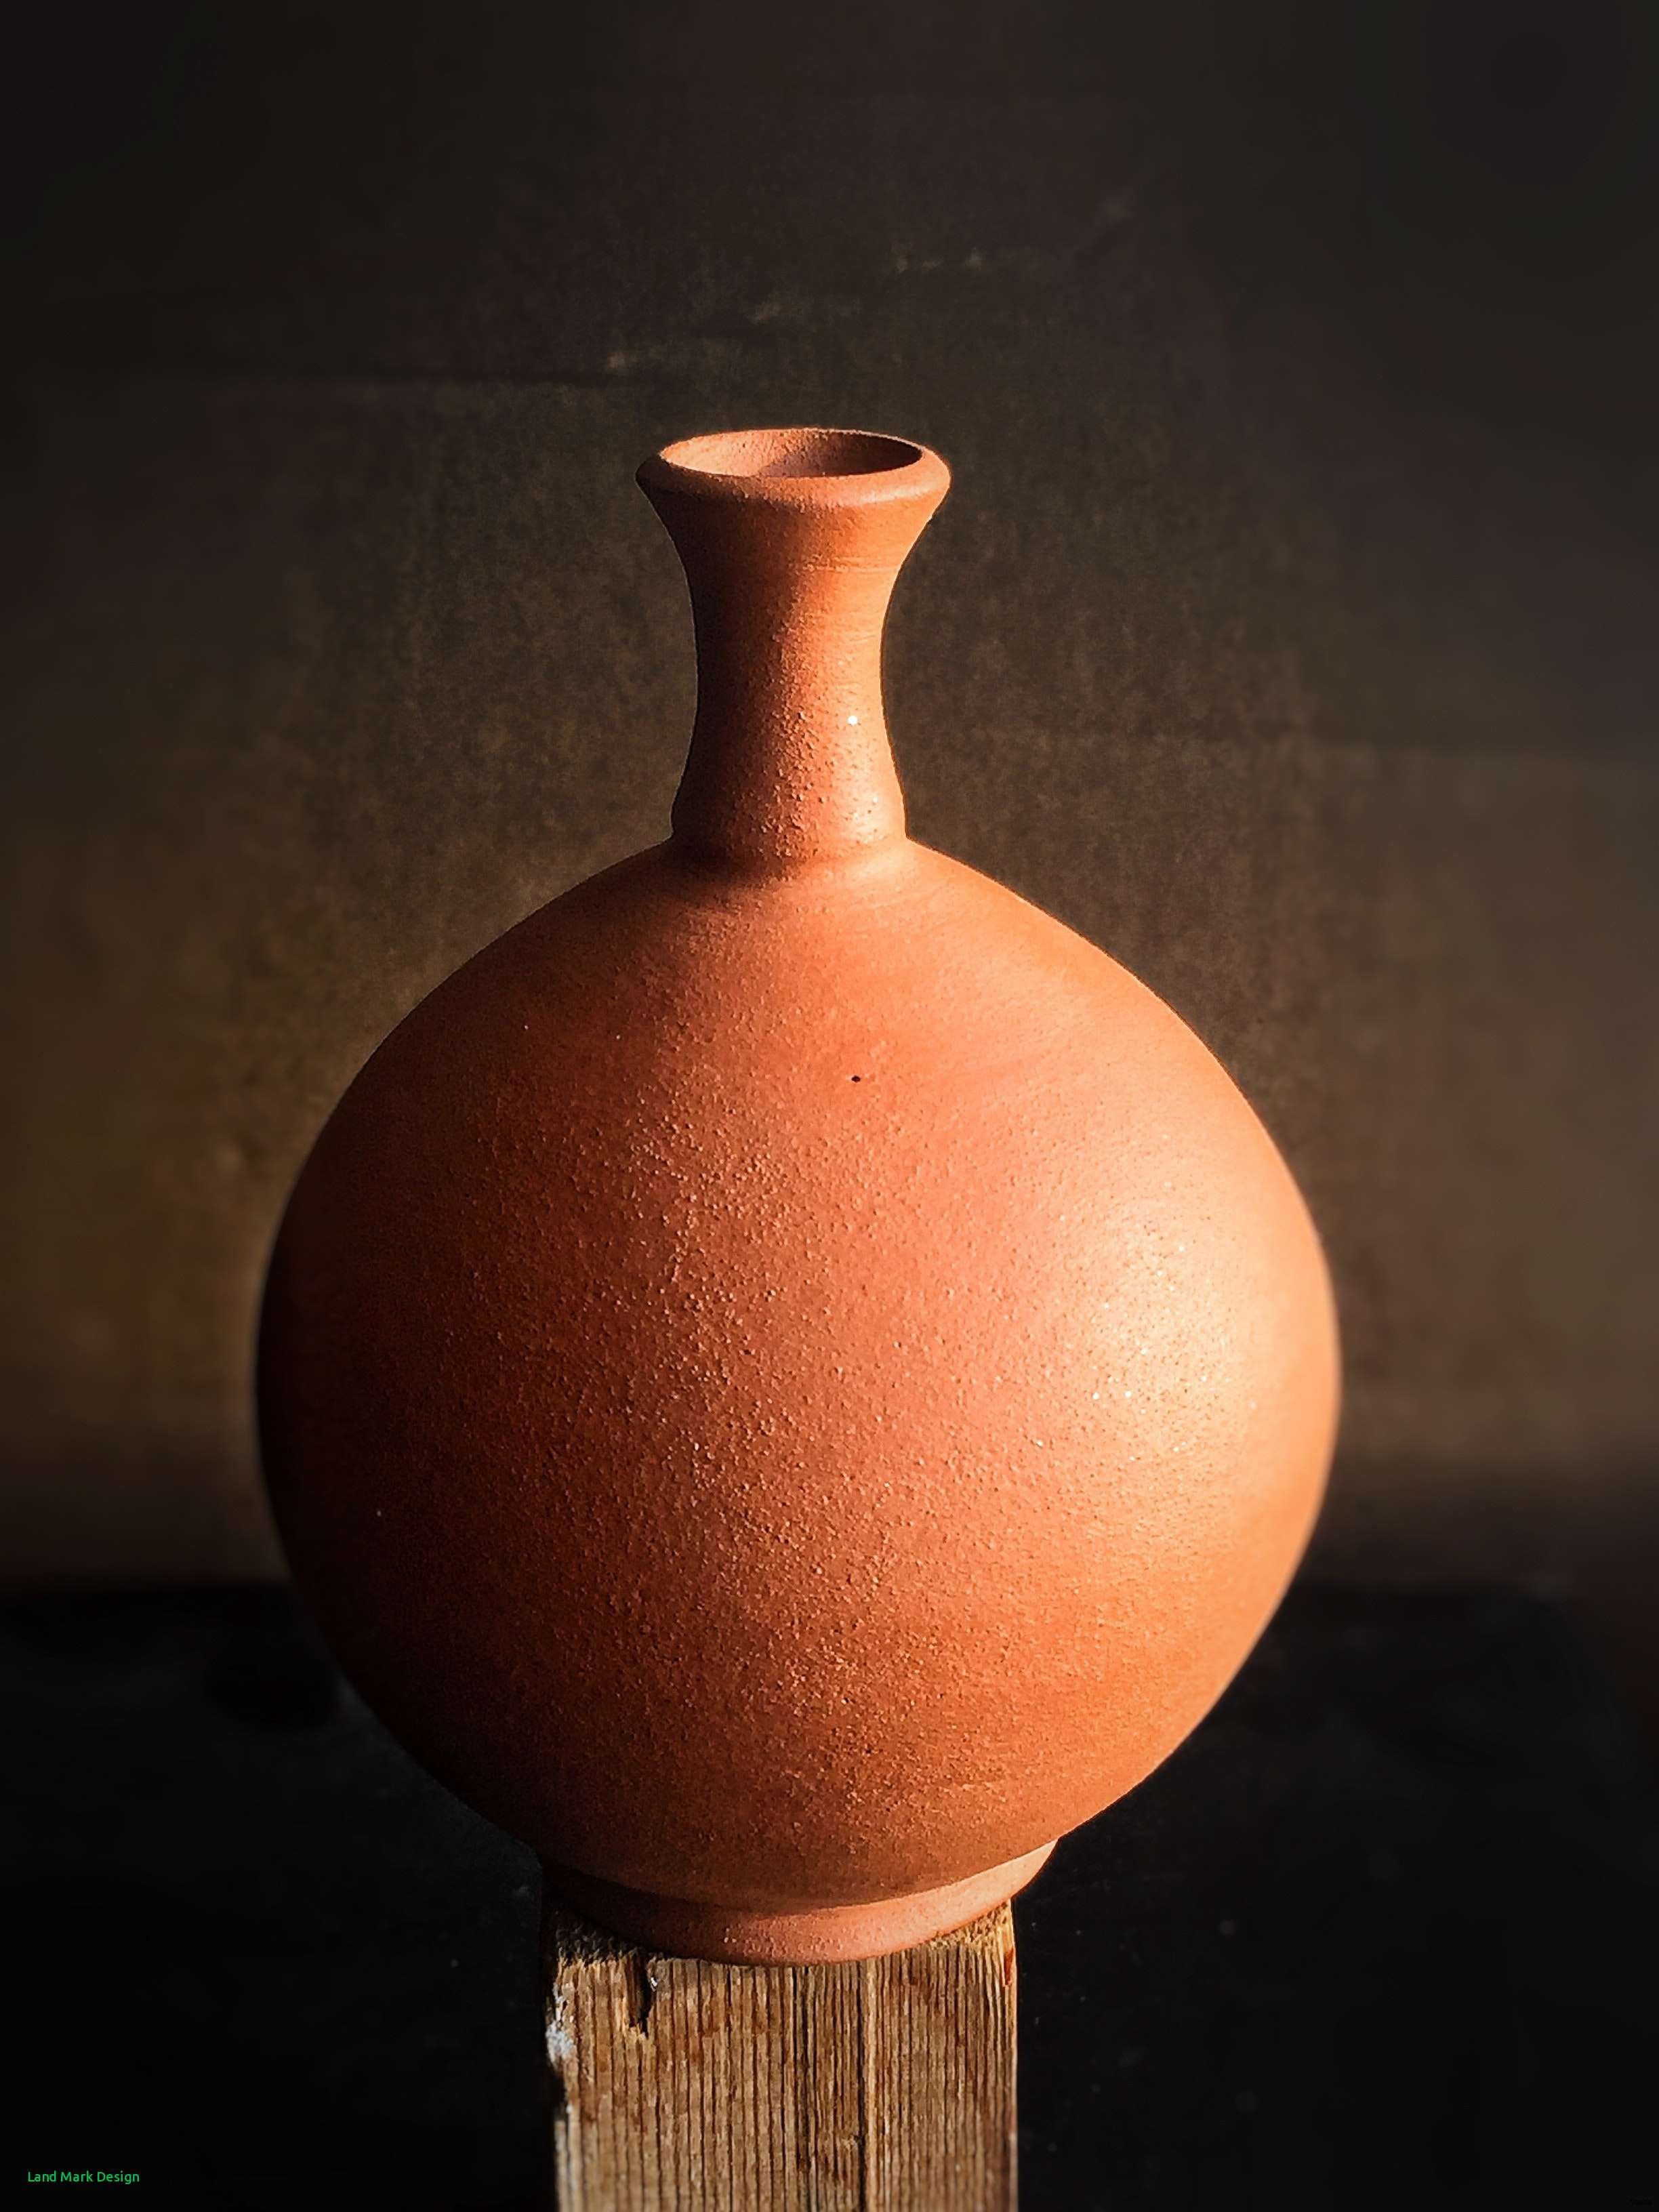 Terracotta Vase Of Large orange Vase Photograph Articles with Flower Vases for Sale Tag Intended for Large orange Vase Pics orange Floor Vase Design Of Large orange Vase Photograph Articles with Flower